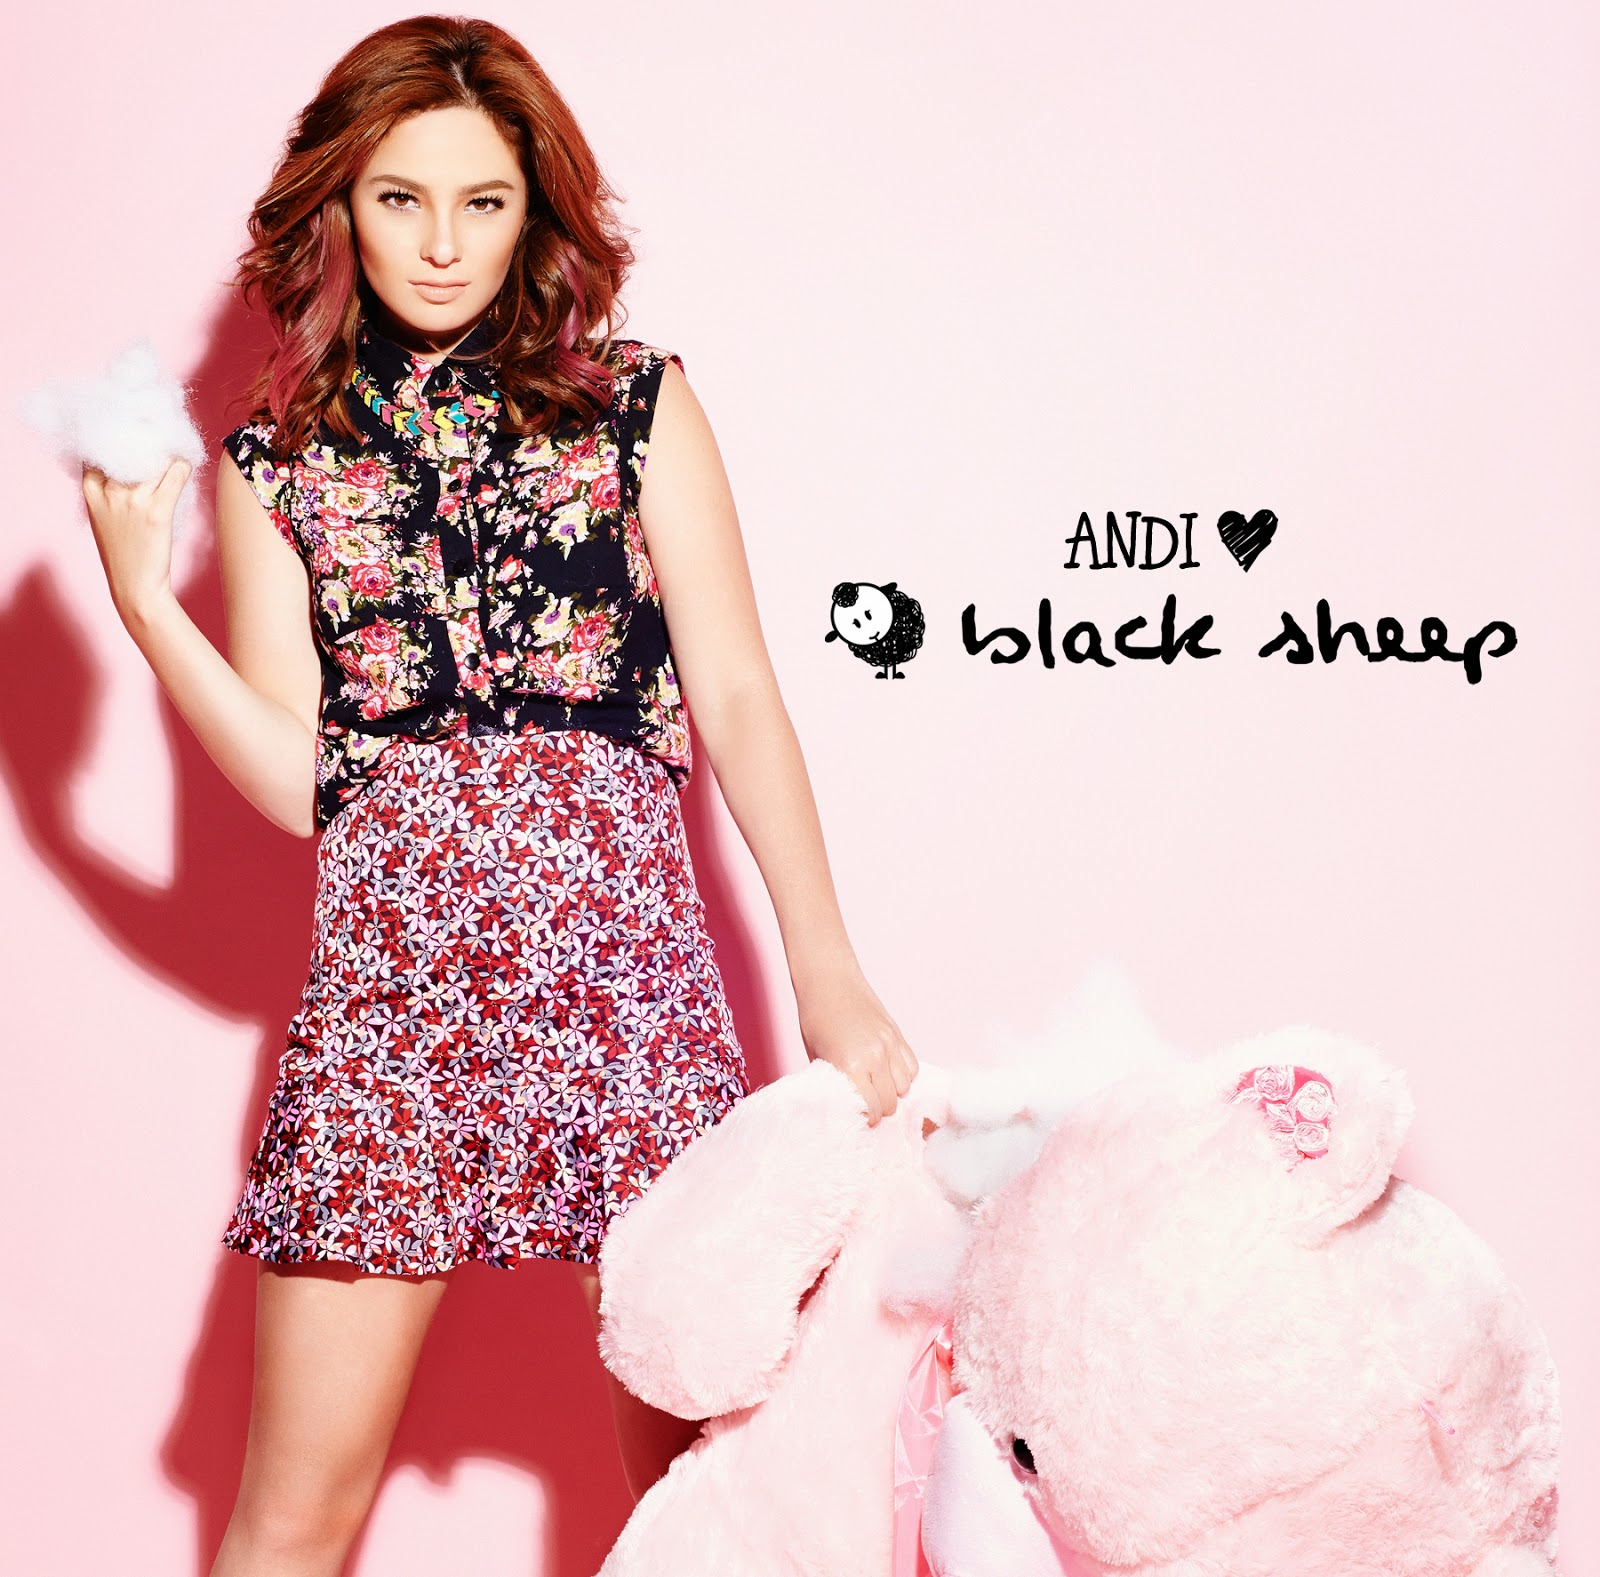 andi eigenmann for black sheep